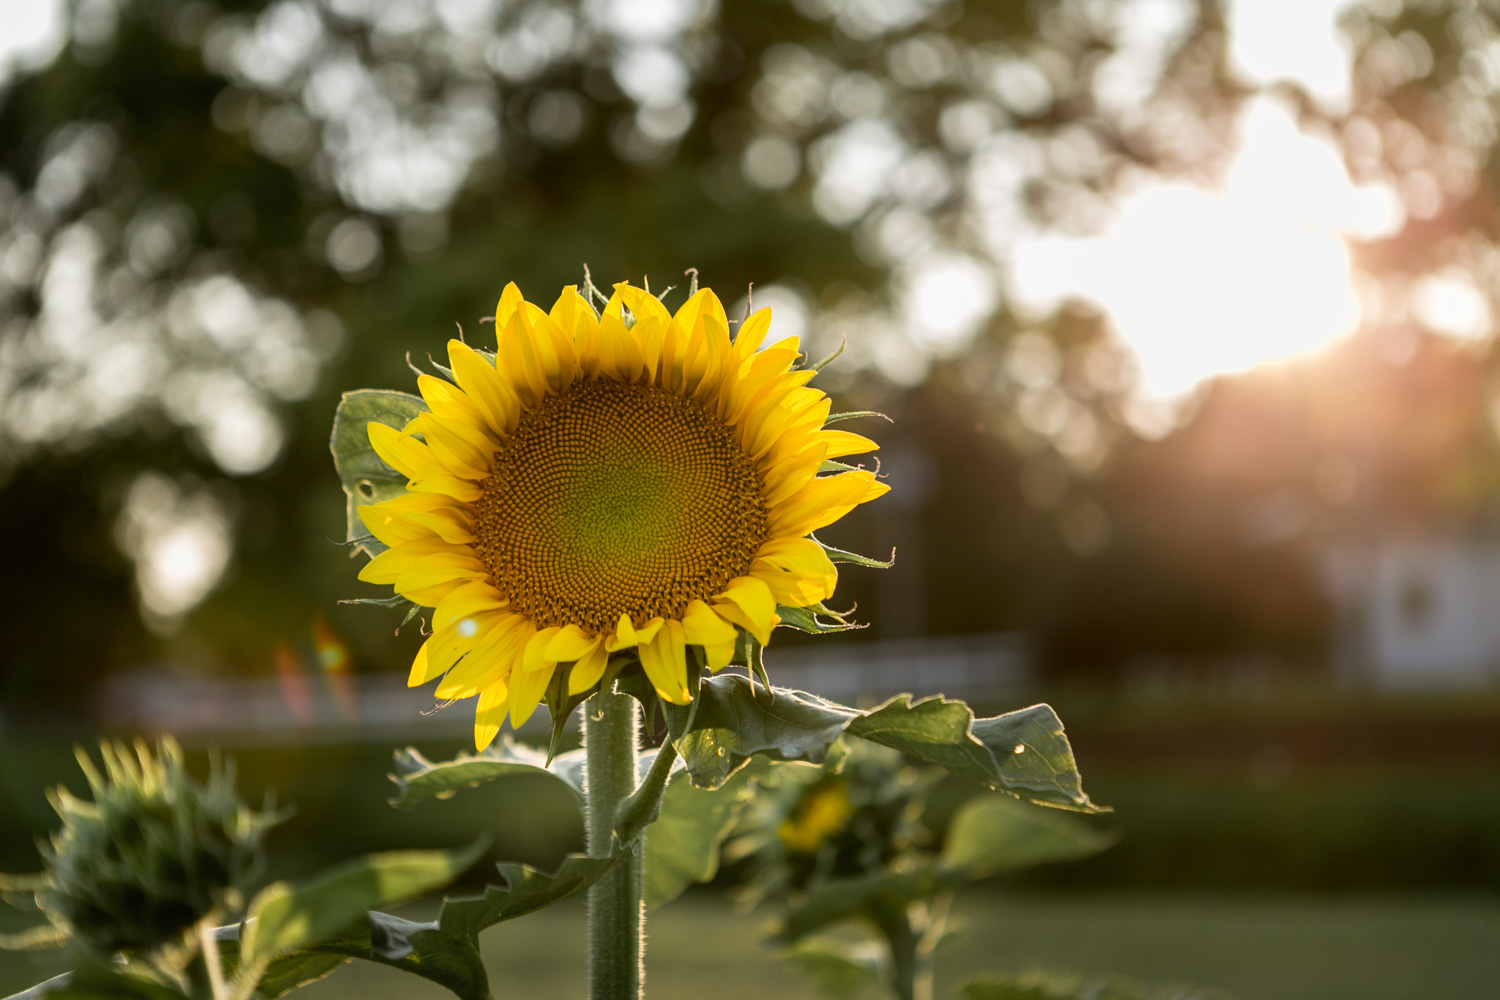 Sunflower in bloom at Kansas State University, during a Fall Photo Session in Manhattan Kansas. Pretty sunflower pictures captured by Renee McDaniel Photography.